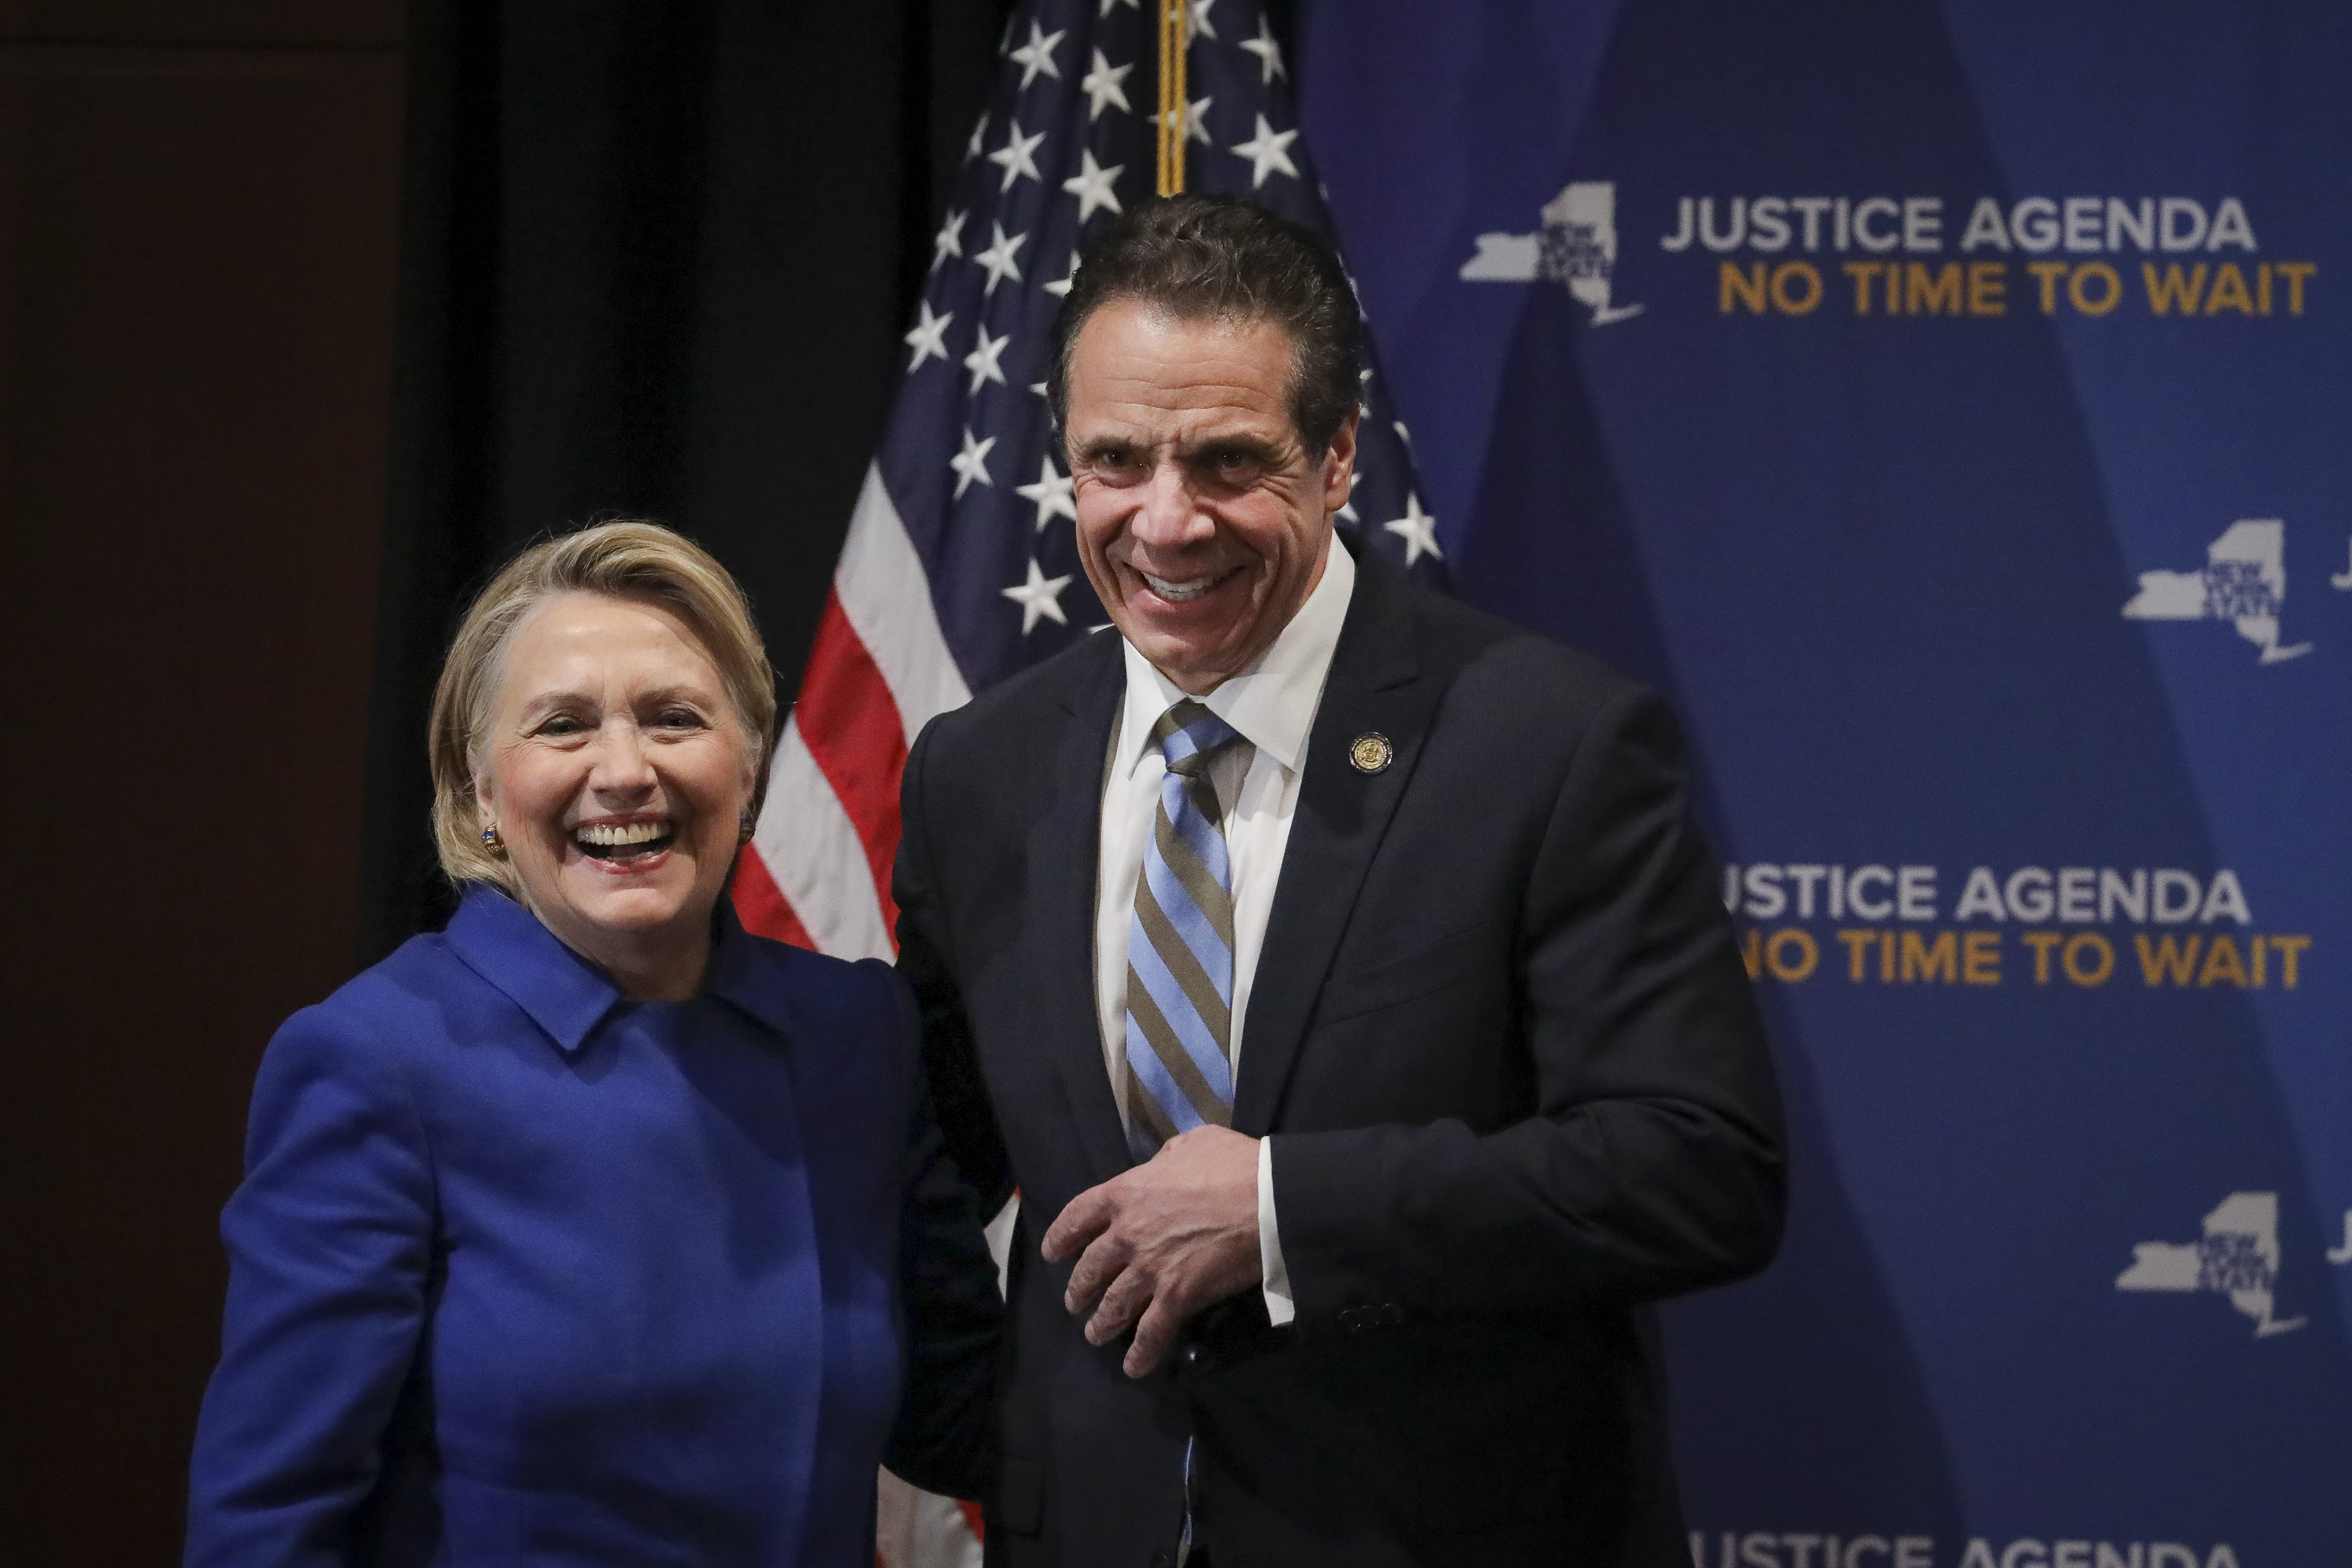 NEW YORK, NY - JANUARY 7: (L-R) Former Secretary of State Hillary Clinton and New York Governor Andrew Cuomo smile at the end of an event to discuss reproductive rights at Barnard College, January 7, 2019 in New York City. The two Democrats shared the stage to promote the Reproductive Health Act in New York, which Cuomo wants the State Legislature to pass in their first 30 days. Under New York's current law, abortions after 24 weeks are illegal unless its necessary to save the woman's life. (Photo by Drew Angerer/Getty Images)